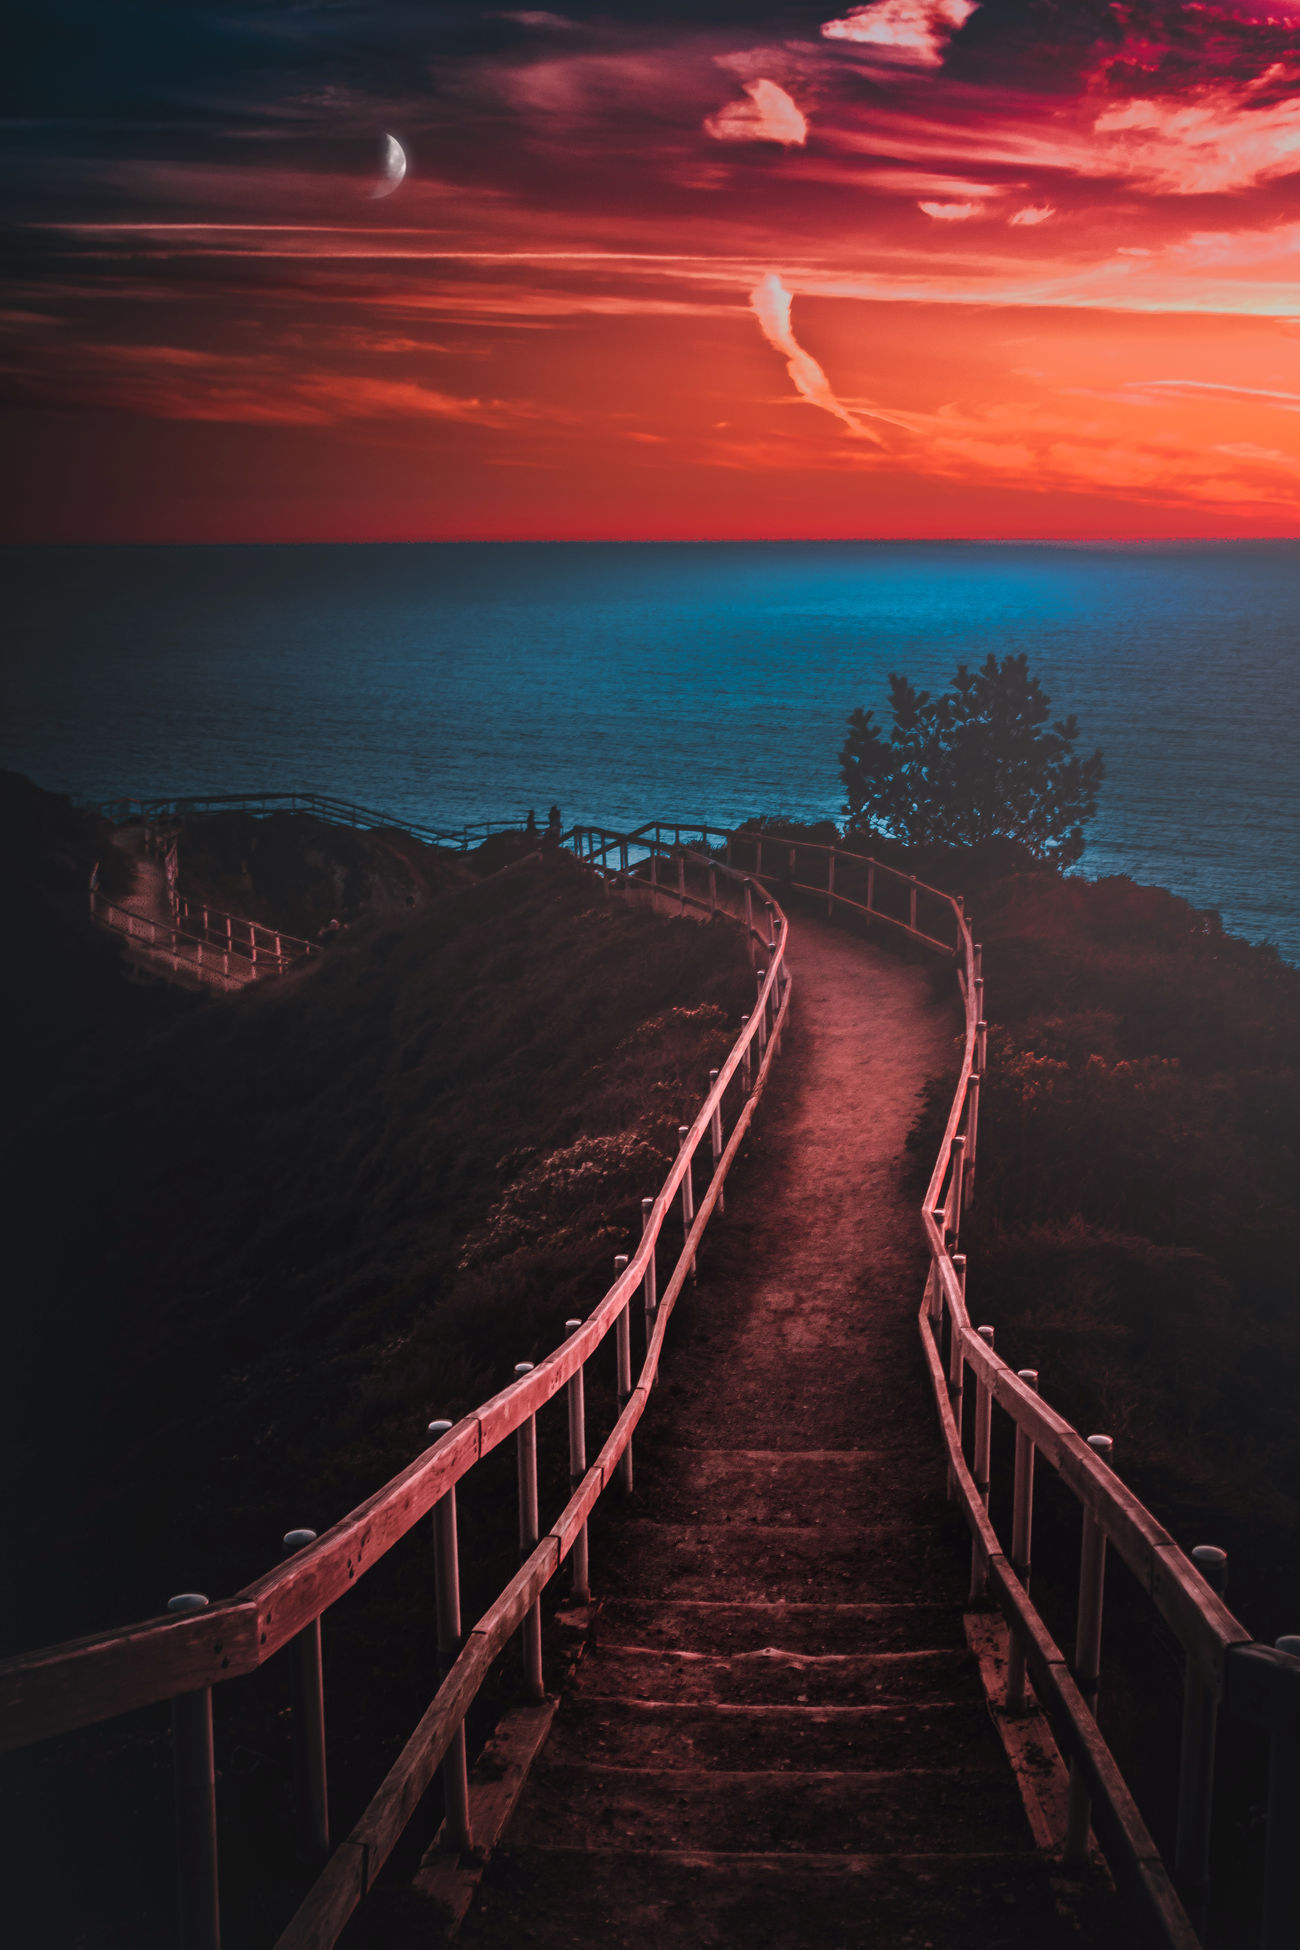 Sea Horizon Over Water Outdoors Scenics No People Night Beauty In Nature Nature EyeEmBestEdits EyeEm Gallery Colors Eye4photography  EyeEm Best Edits EyeEm EyeEm Best Shots Nature Sunset Magic Landscape Water Sun Eyeemphotography Sky Beauty In Nature Colorful